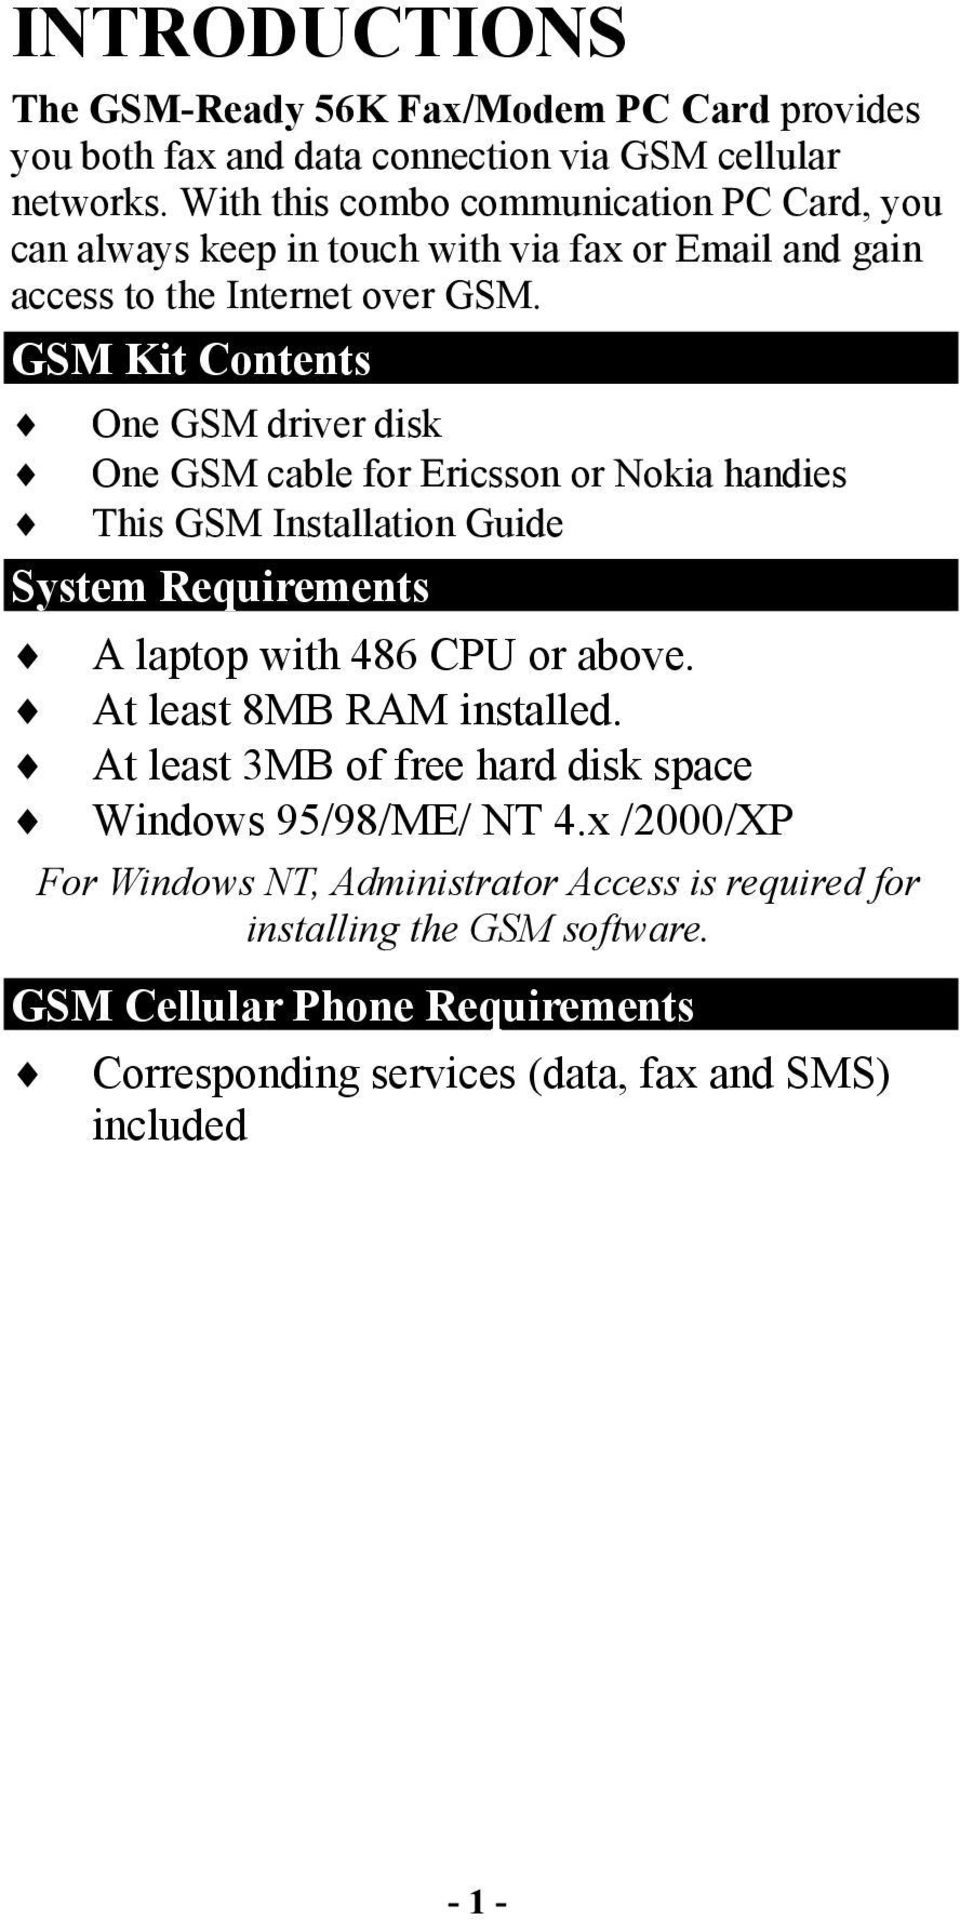 GSM Kit Contents One GSM driver disk One GSM cable for Ericsson or Nokia handies This GSM Installation Guide System Requirements A laptop with 486 CPU or above.